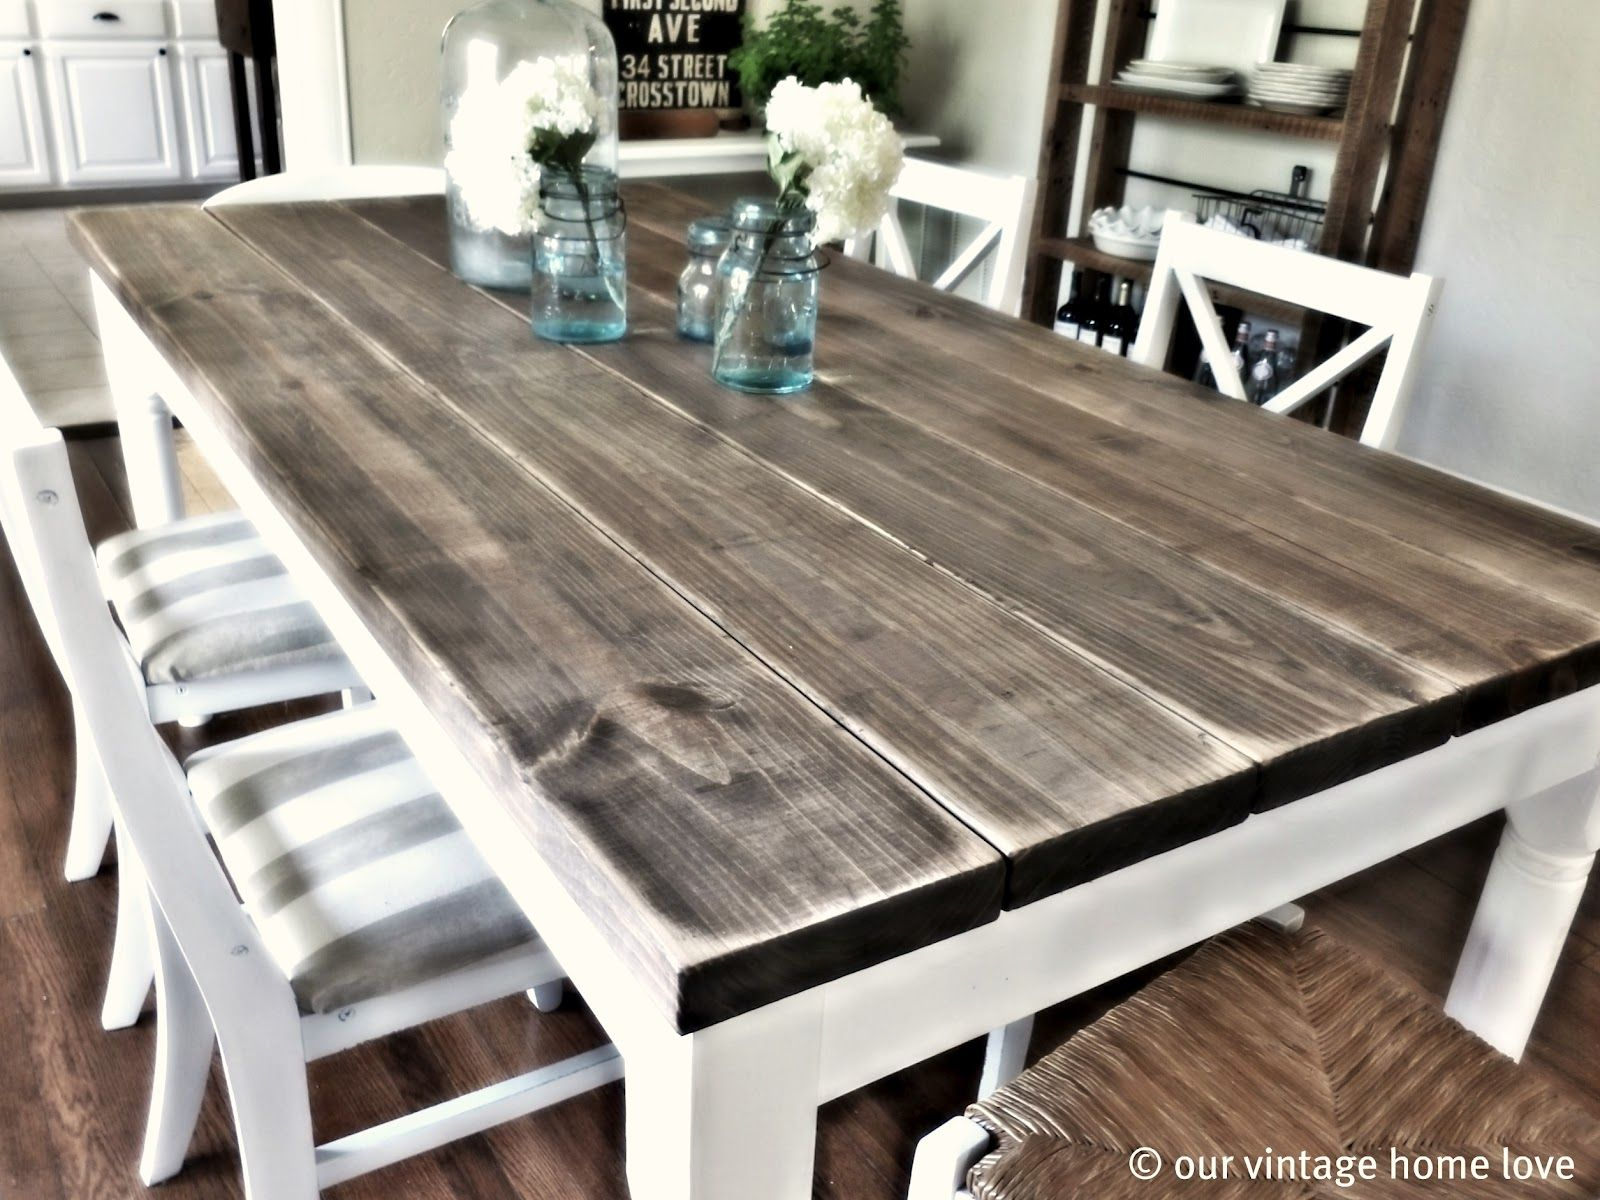 Homemade Dining Room Table Extraordinary Our Vintage Home Love Dining Room Table Tutorial I Want This For . Review